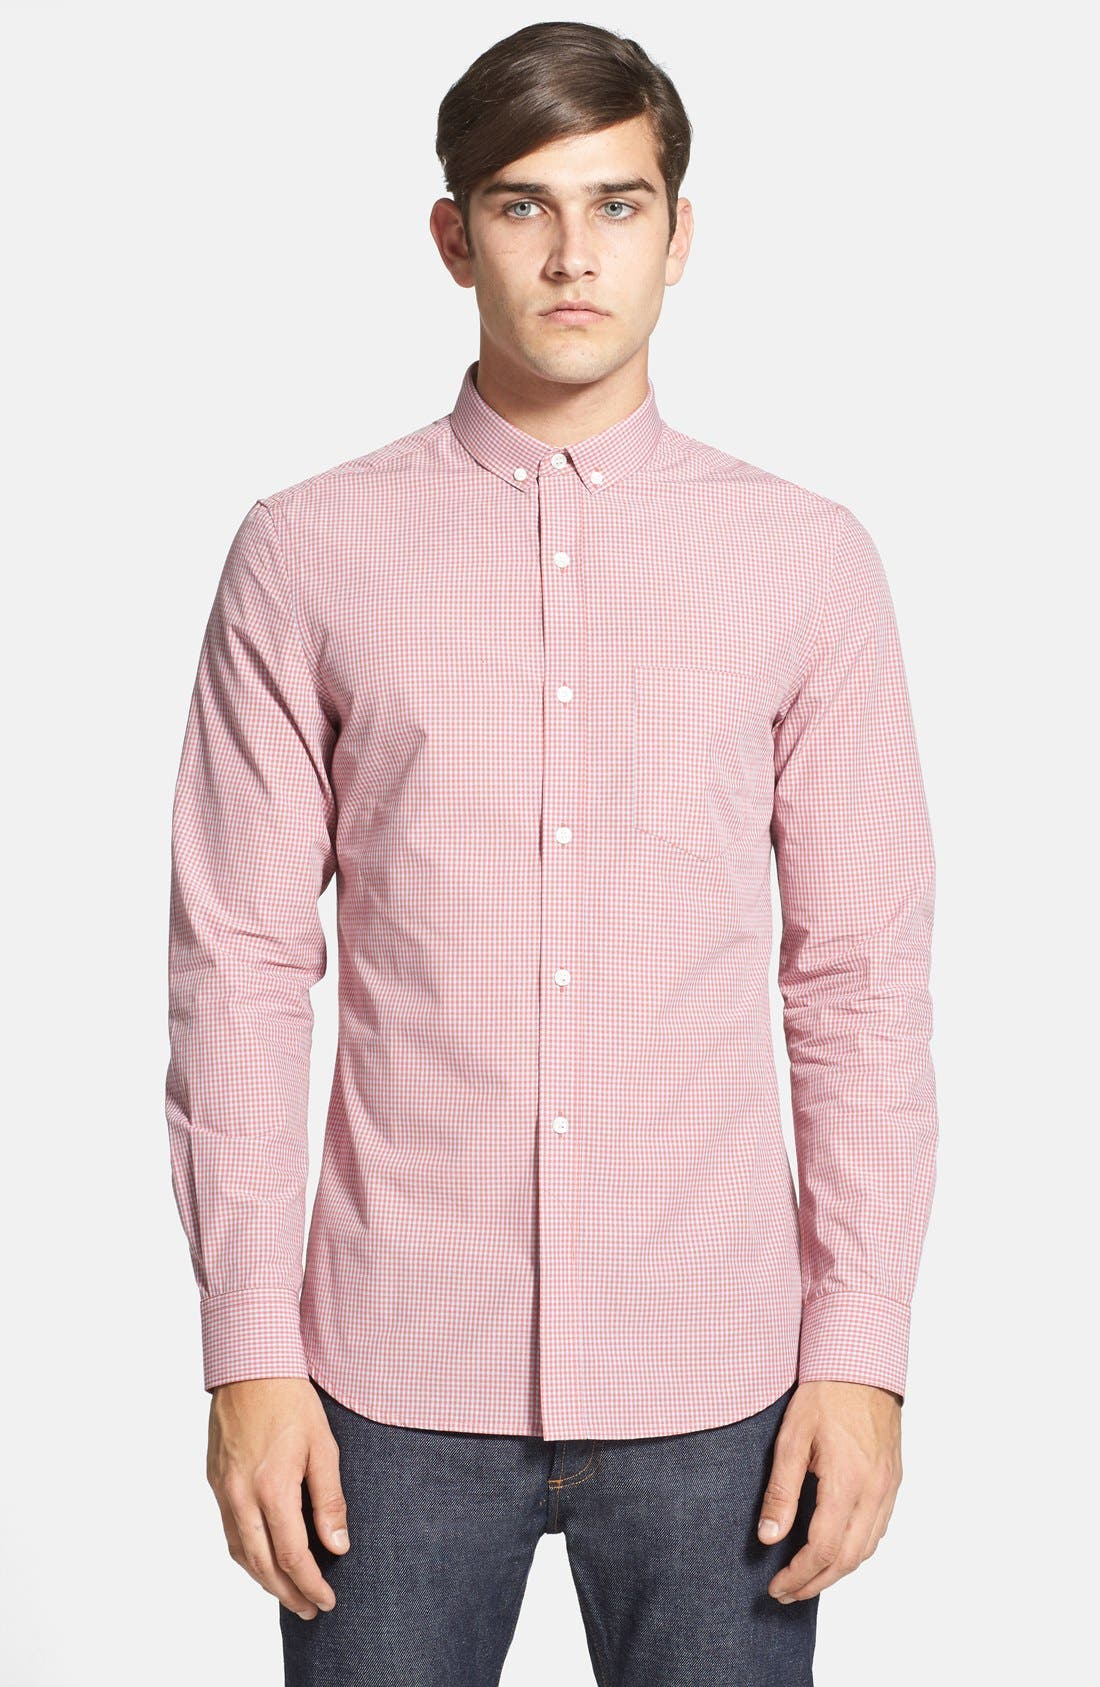 Alternate Image 1 Selected - French Connection Slim Fit Gingham Sport Shirt